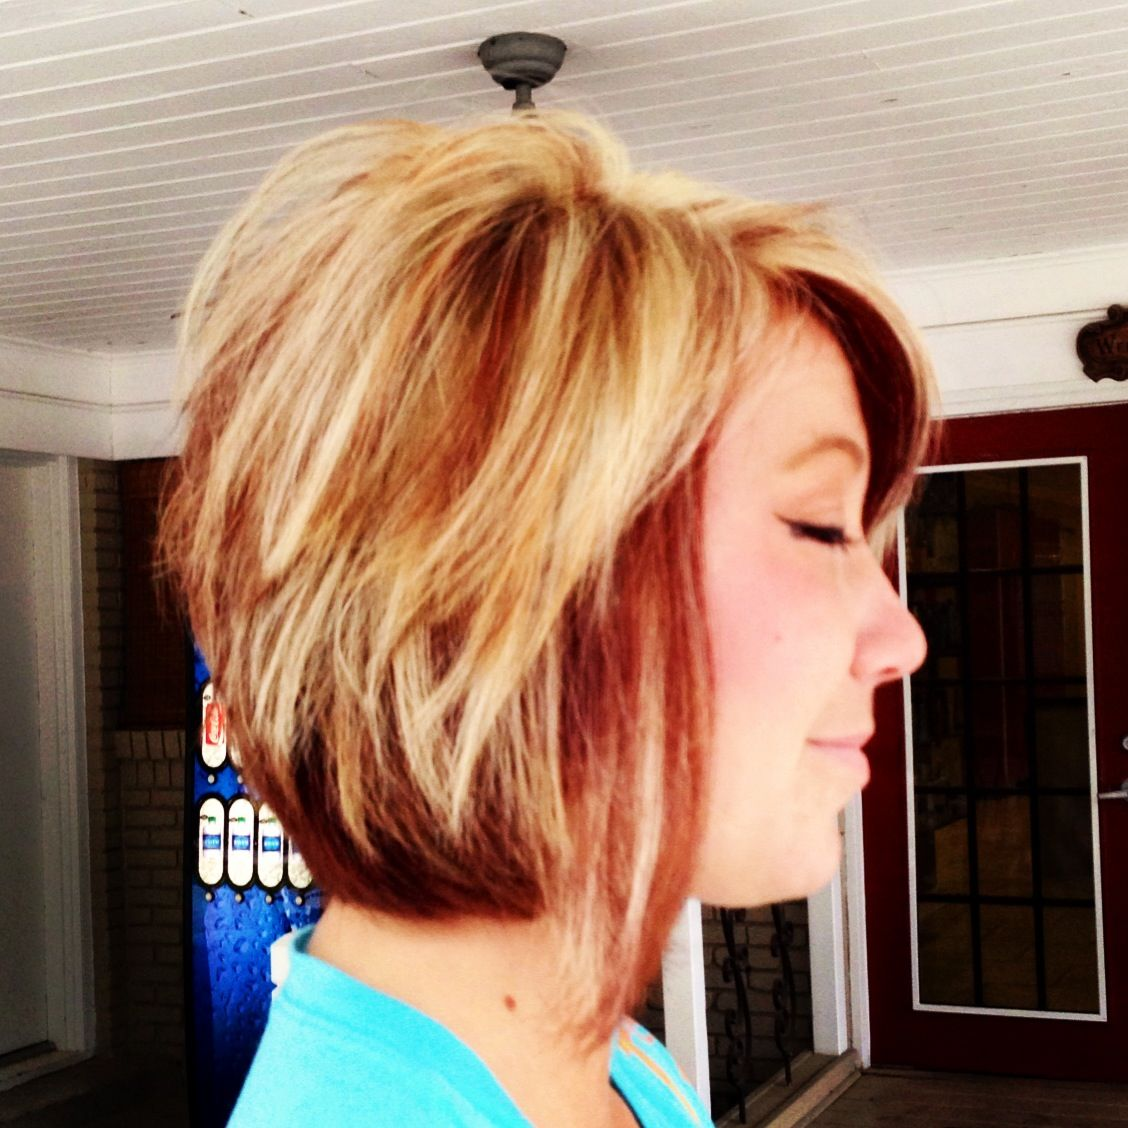 Cute sassy short cut summer cut red and blonde chunks itus